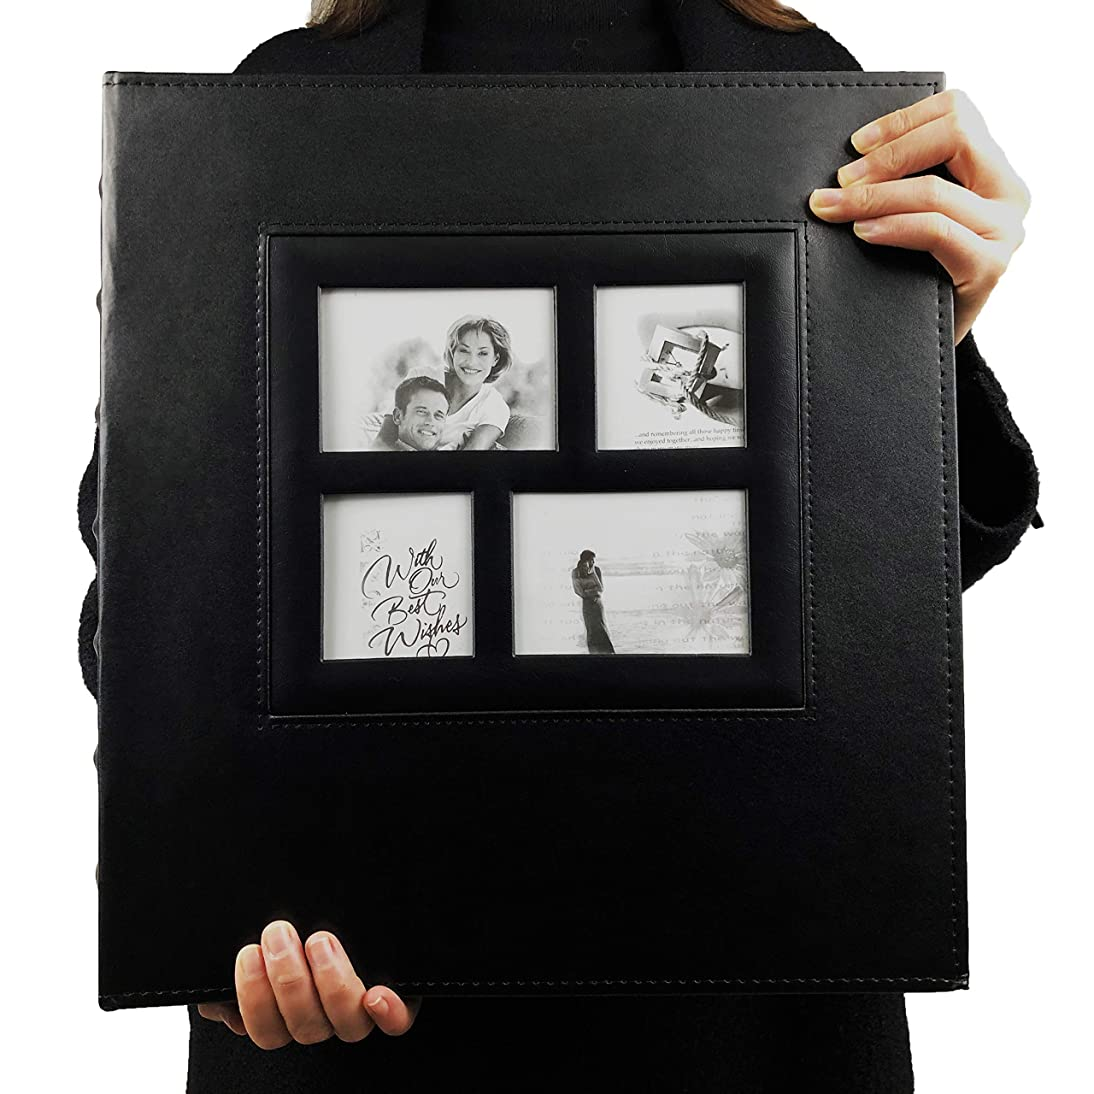 RECUTMS Photo Album 4x6 600 Photos Black Pages Large Capacity Leather Cover Wedding Family Photo Albums Holds 600 Horizontal and Vertical Photos (Black) chwb785804359446